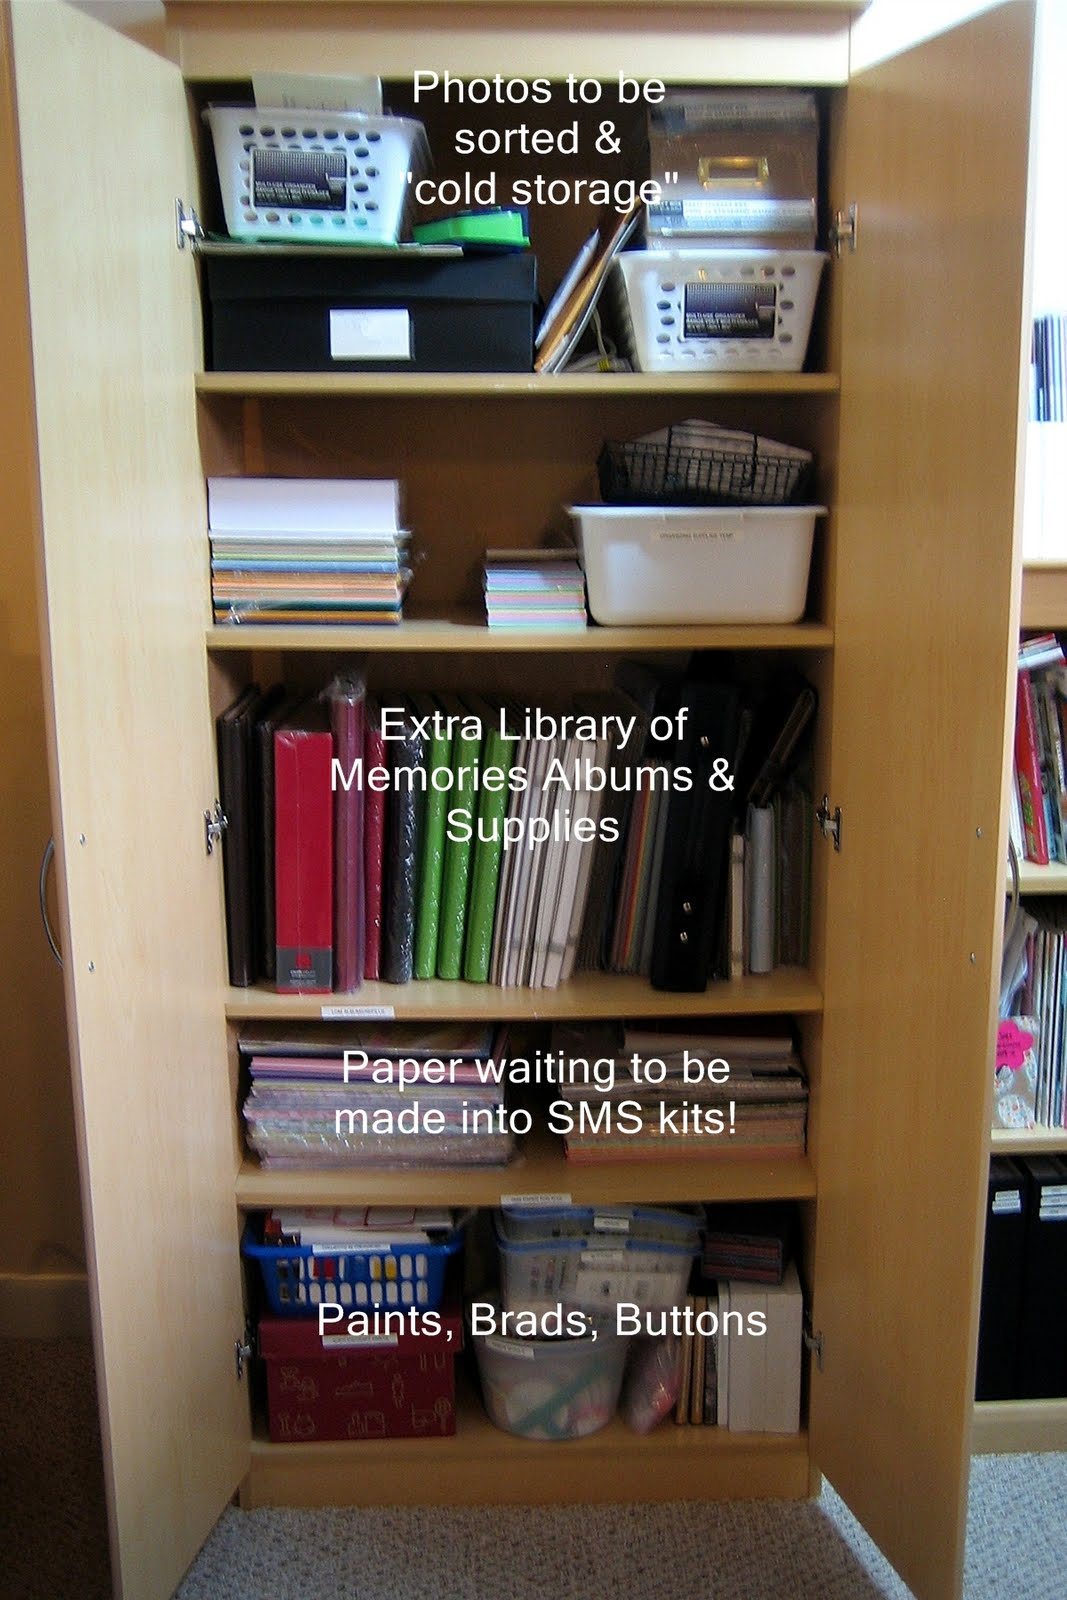 The Shorter Bookcase In Middle Is For Magazines Books And My Library Of Memories Photo Storage Albums